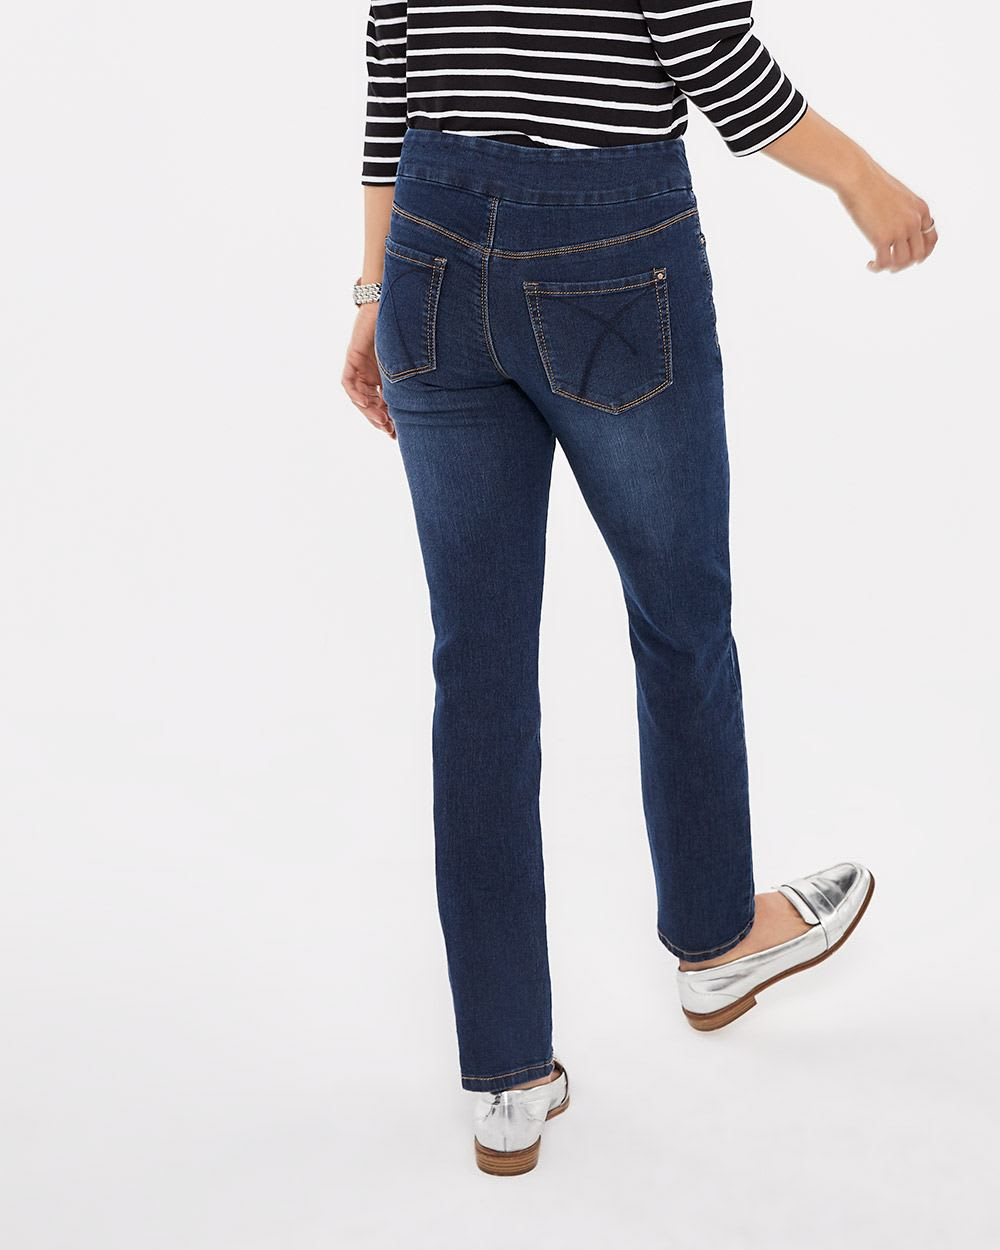 Straight Leg Jeans The Original Comfort